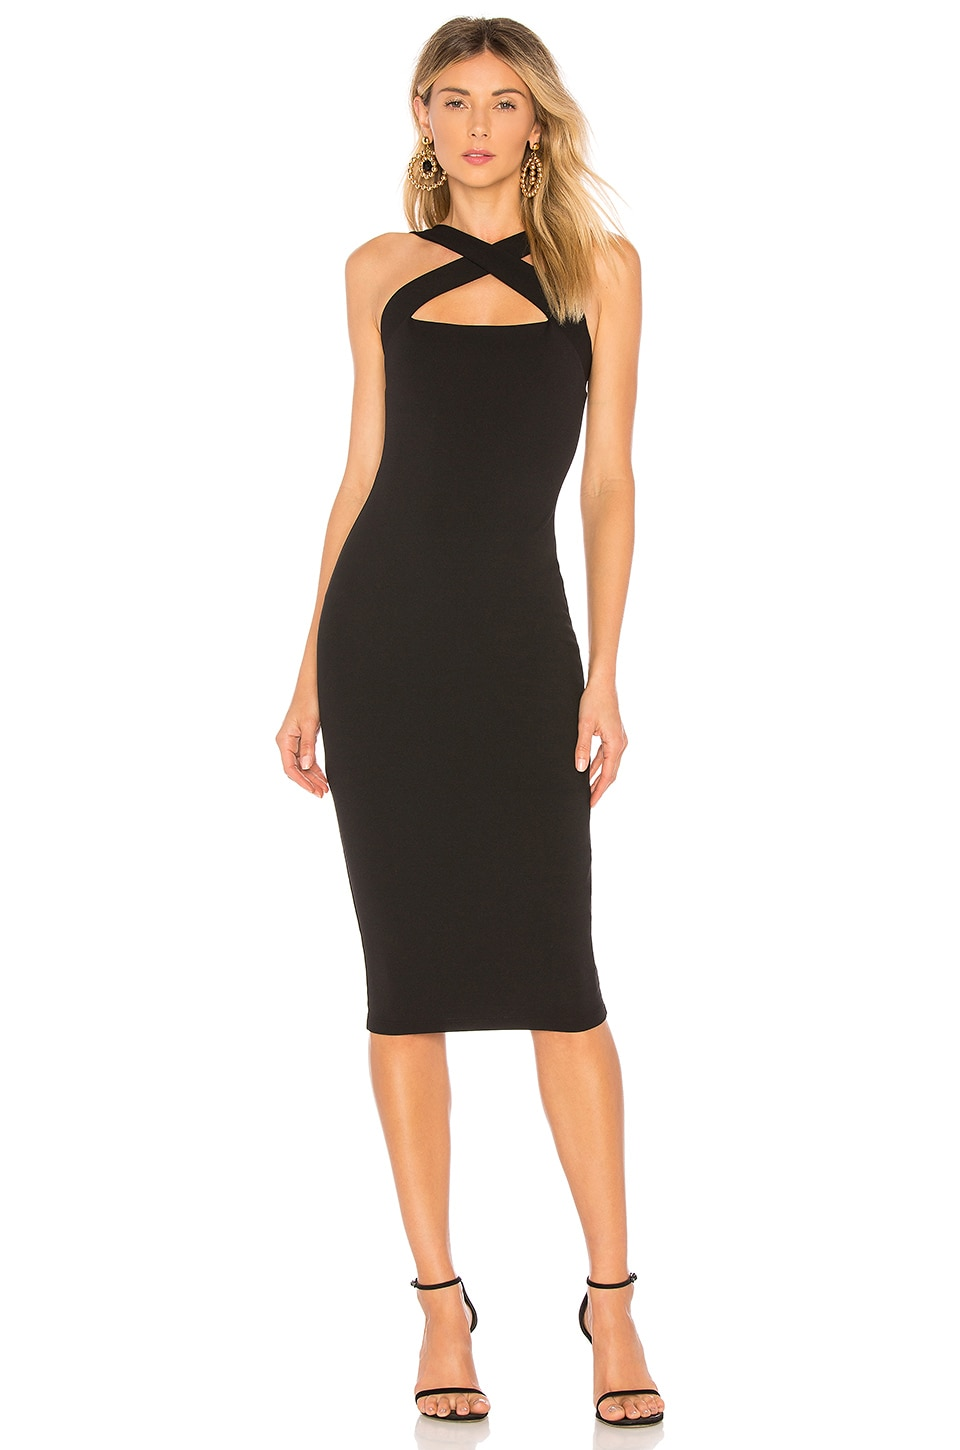 Nookie Viva 2Way Midi Dress in Black